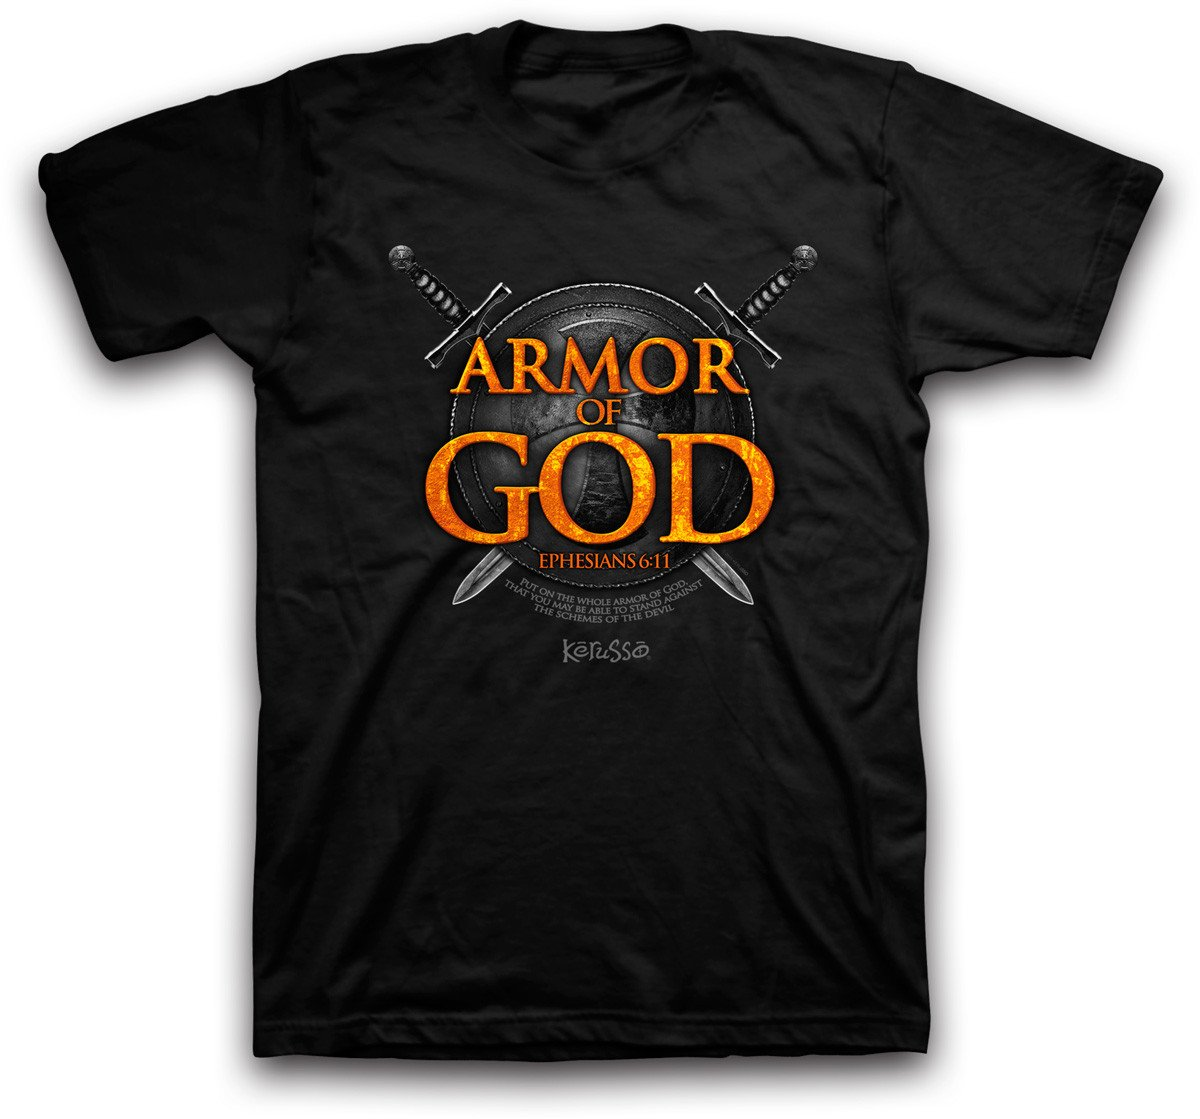 Armor-of-God-Christian-T-Shirt